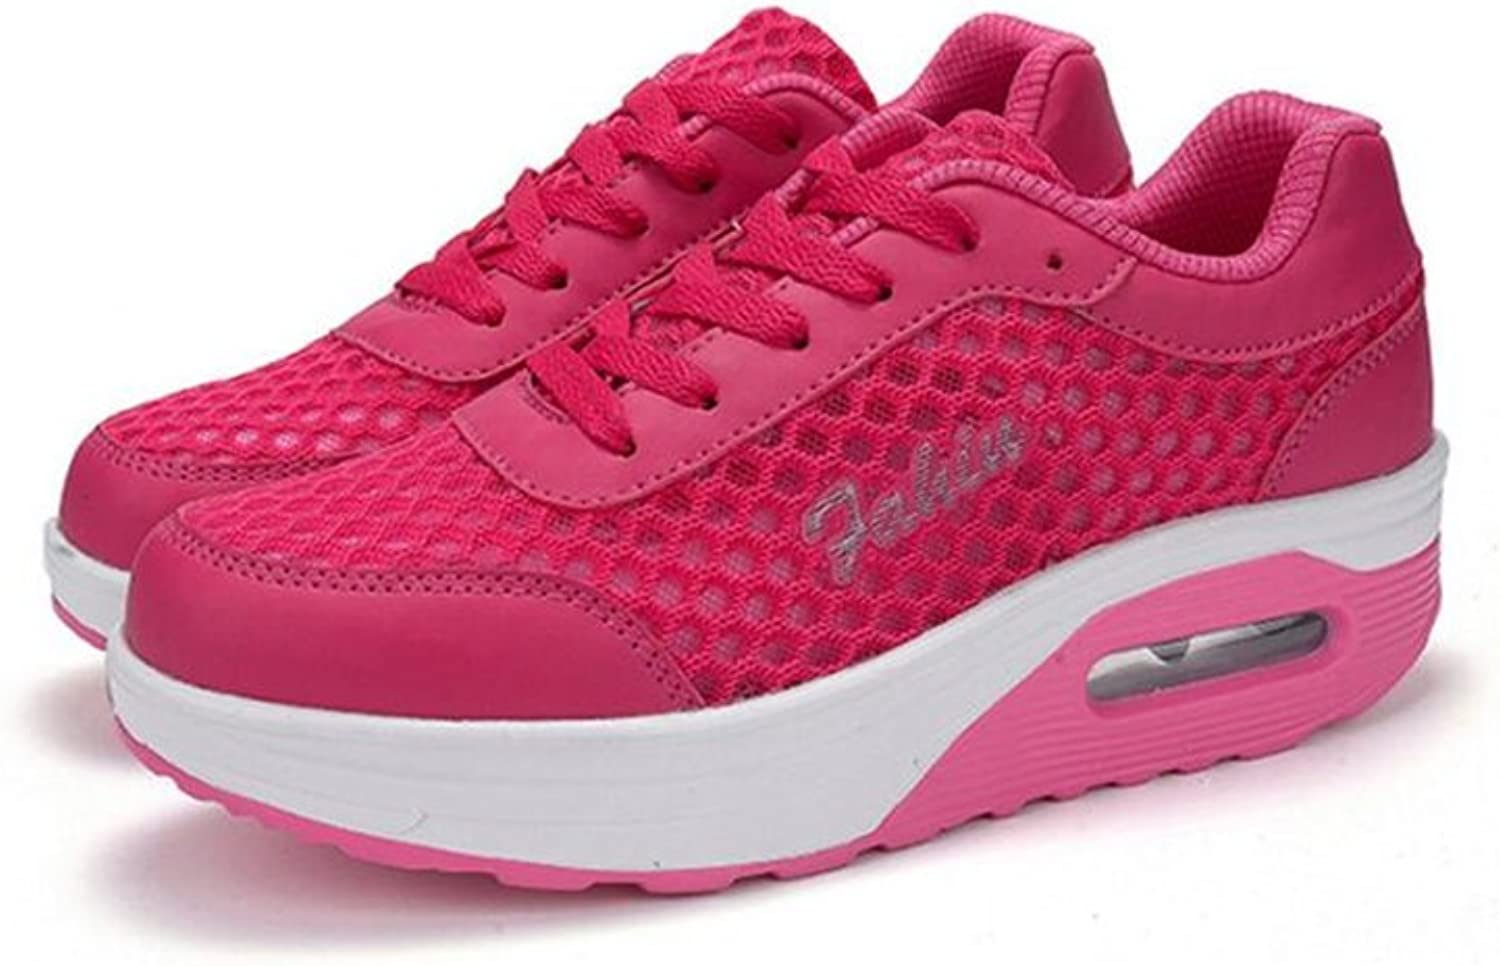 Edv0d2v266 Women's Athletic Mesh Breathable Sneakers Running Sports shoes Anti-Slip shoes